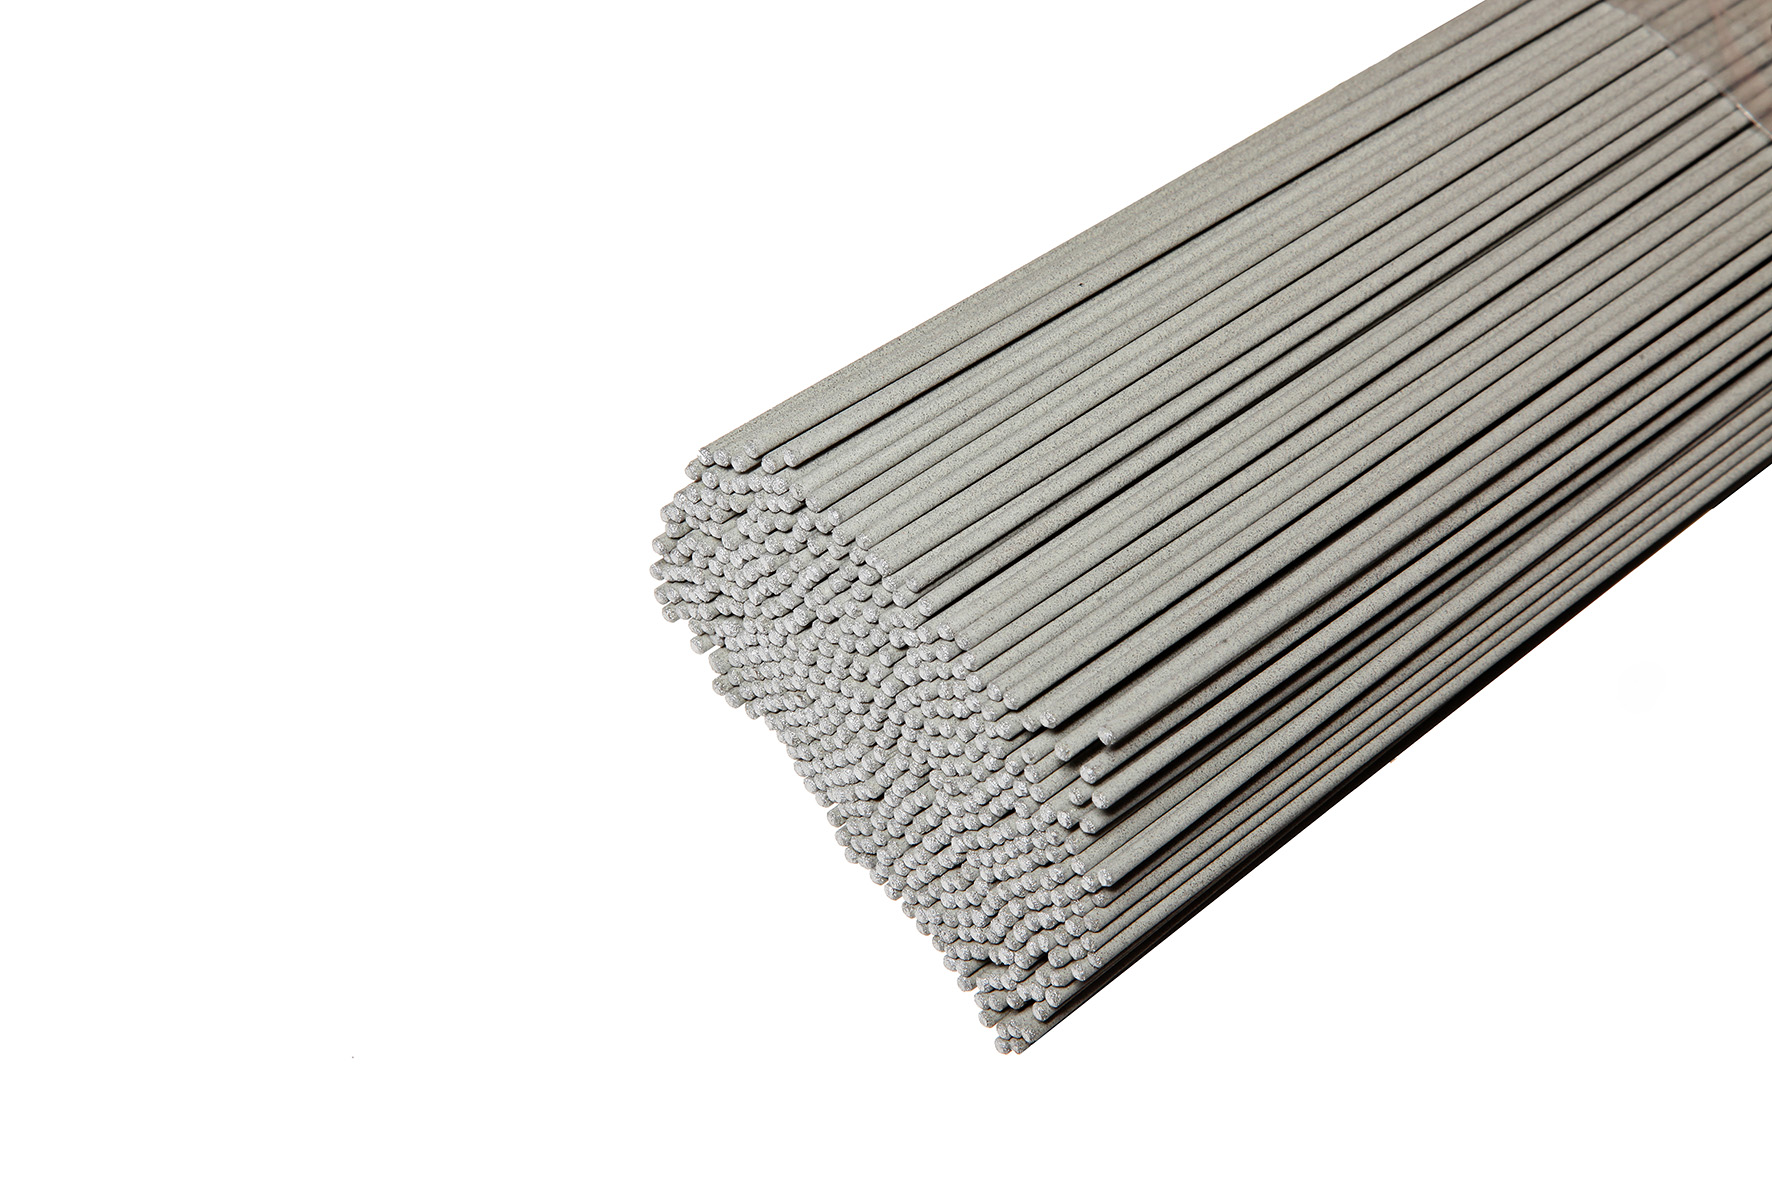 STAINLESS STEEL 316L RUTILE-BASIC ELECTRODES page image